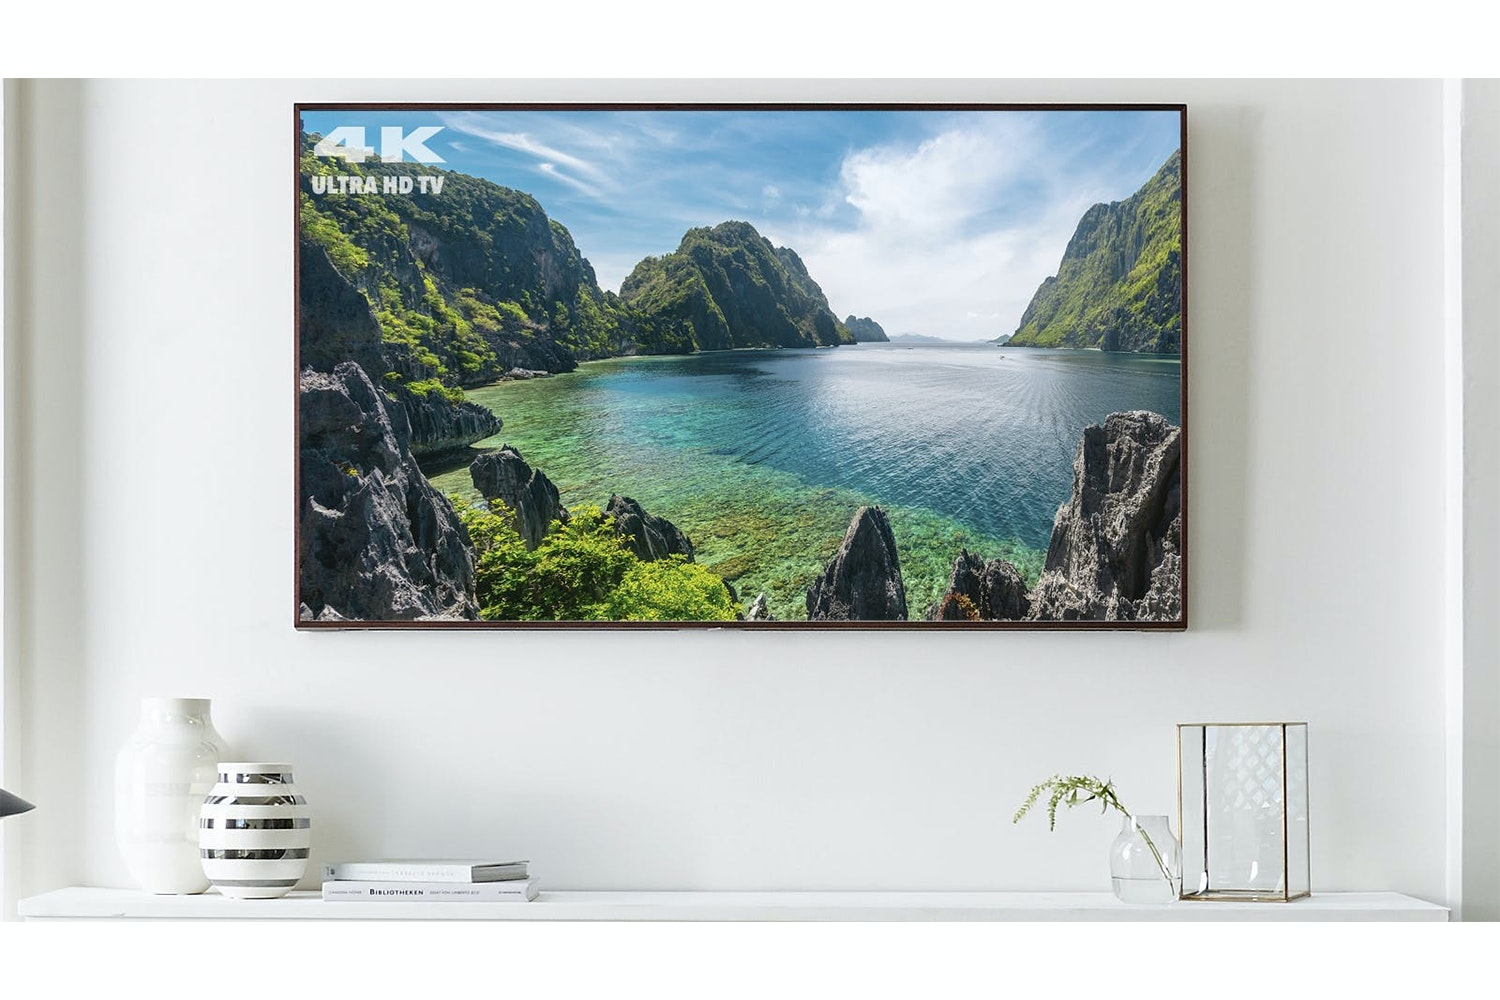 Samsung 65 The Frame 4k Smart Tv Harvey Norman New Zealand